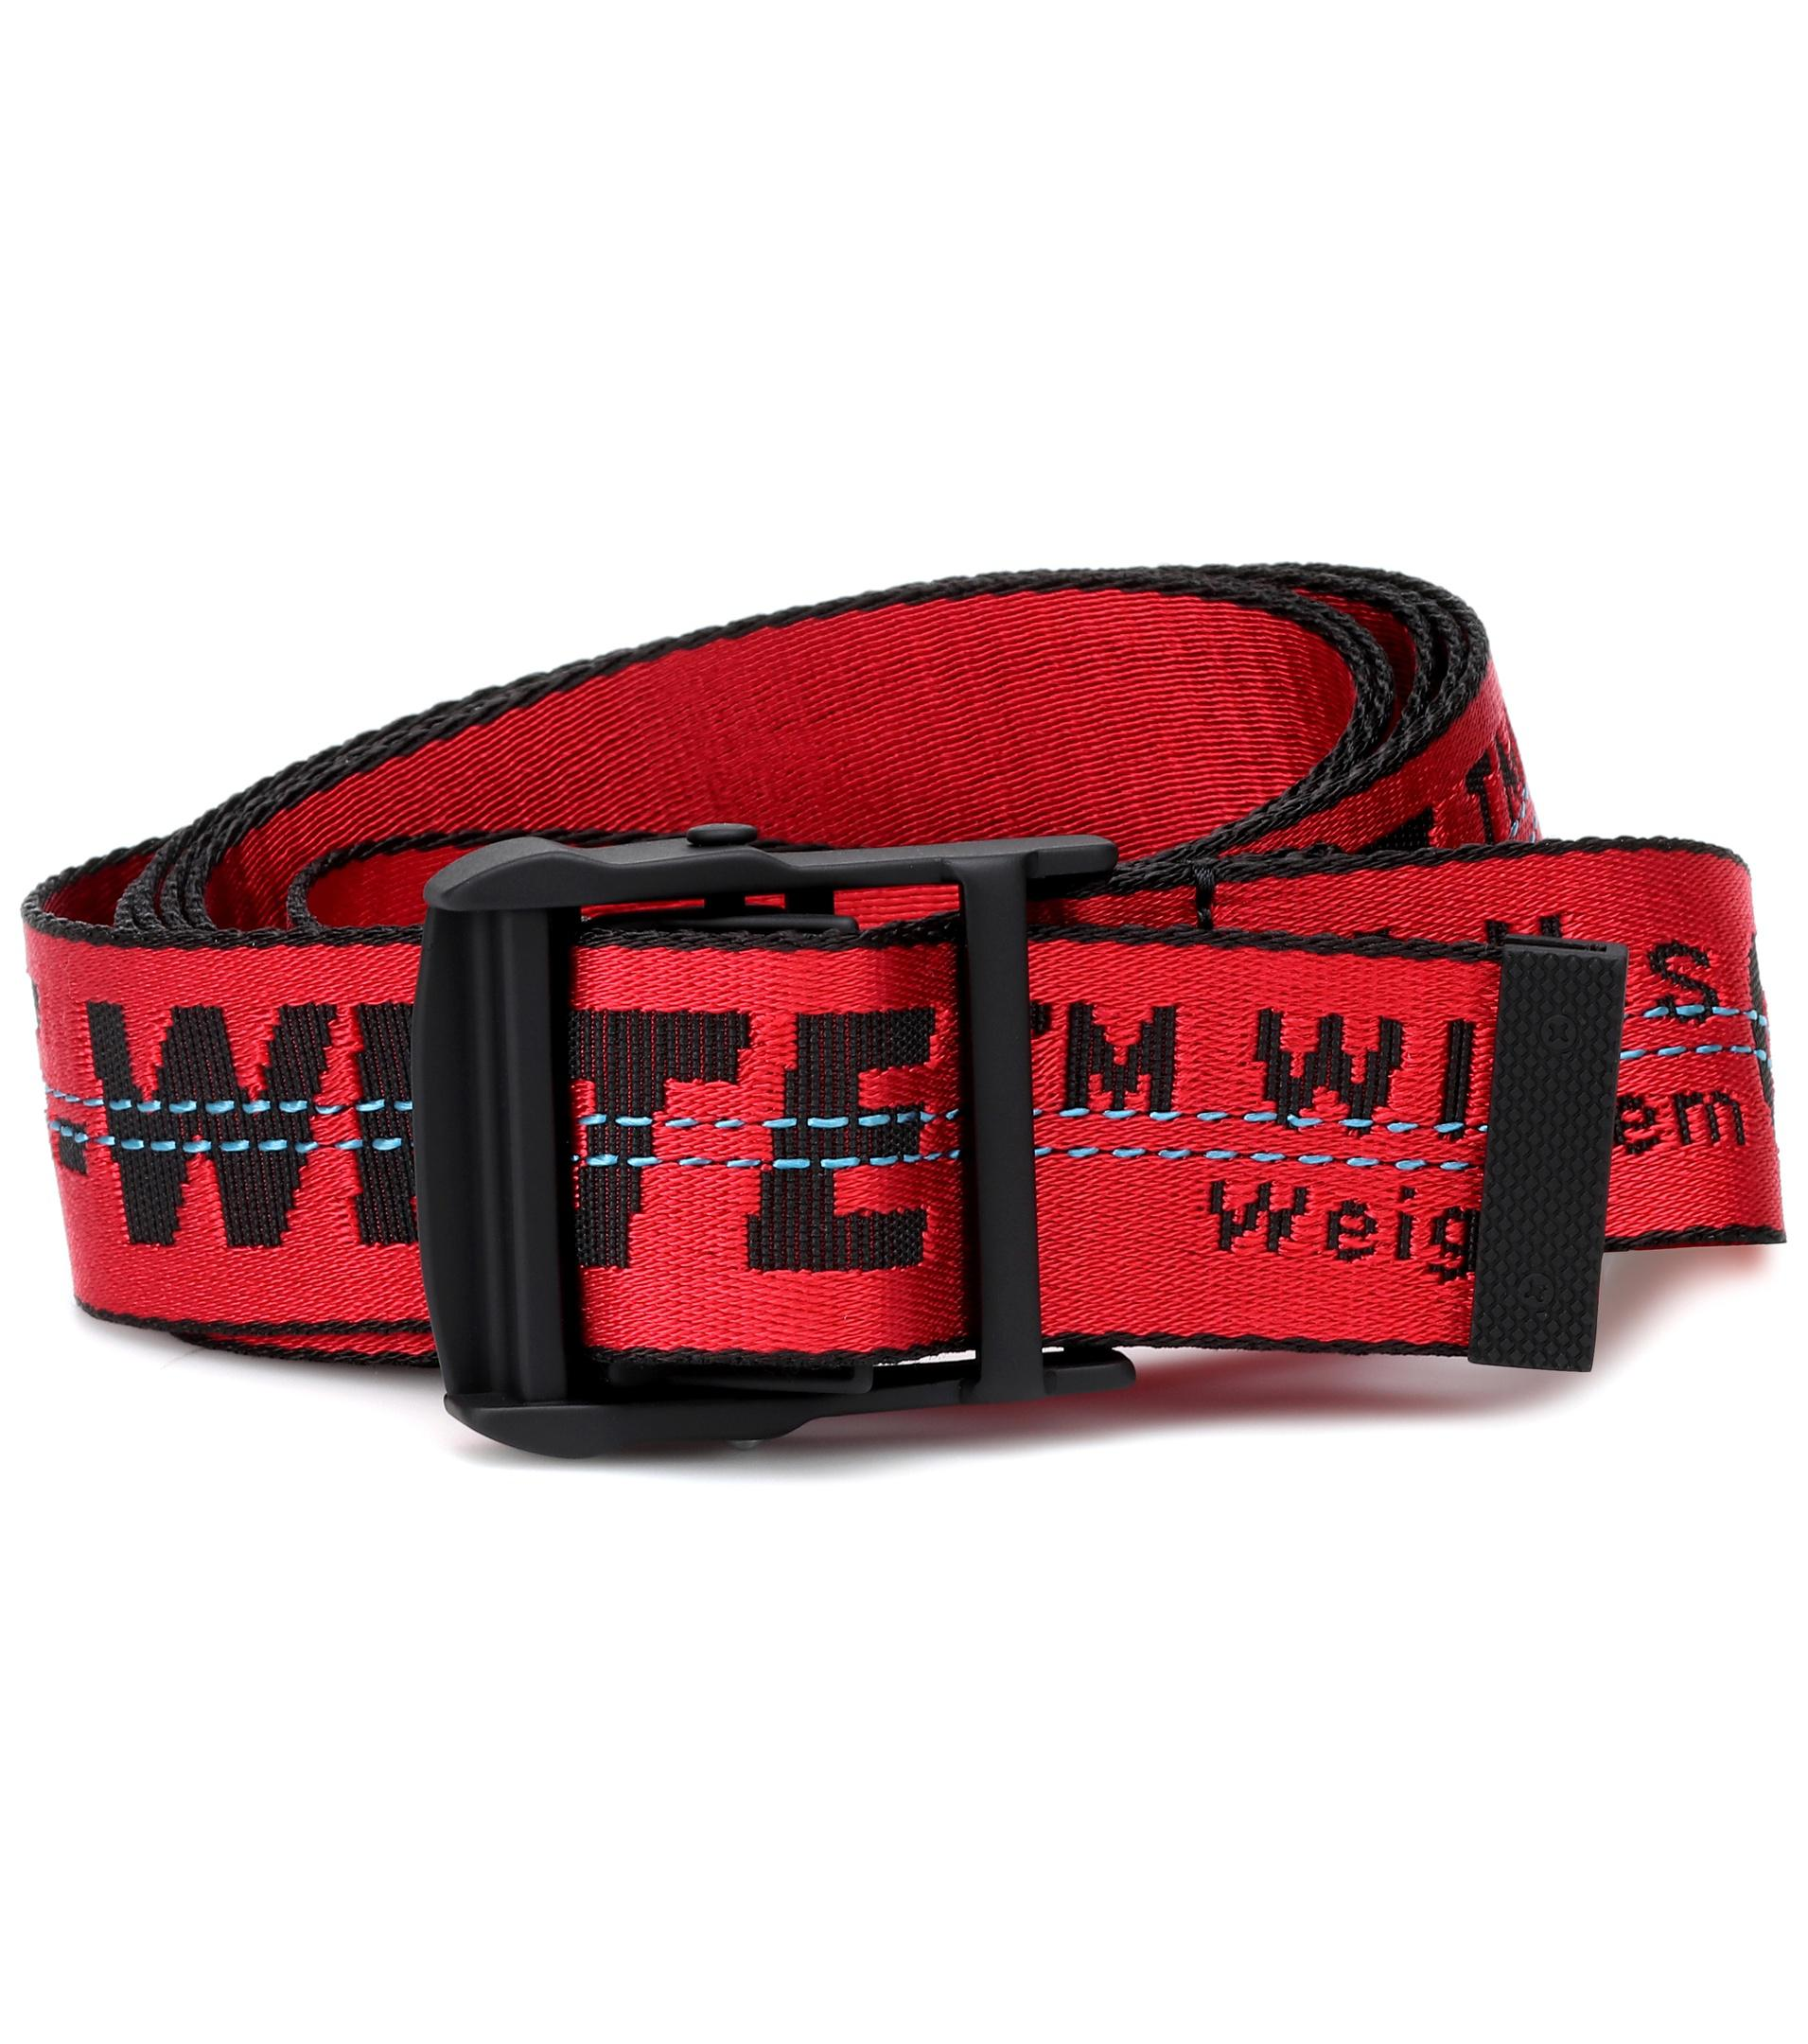 Lyst - Ceinture Industrial Off-White c o Virgil Abloh en coloris Rouge cfe7ff8dfd3